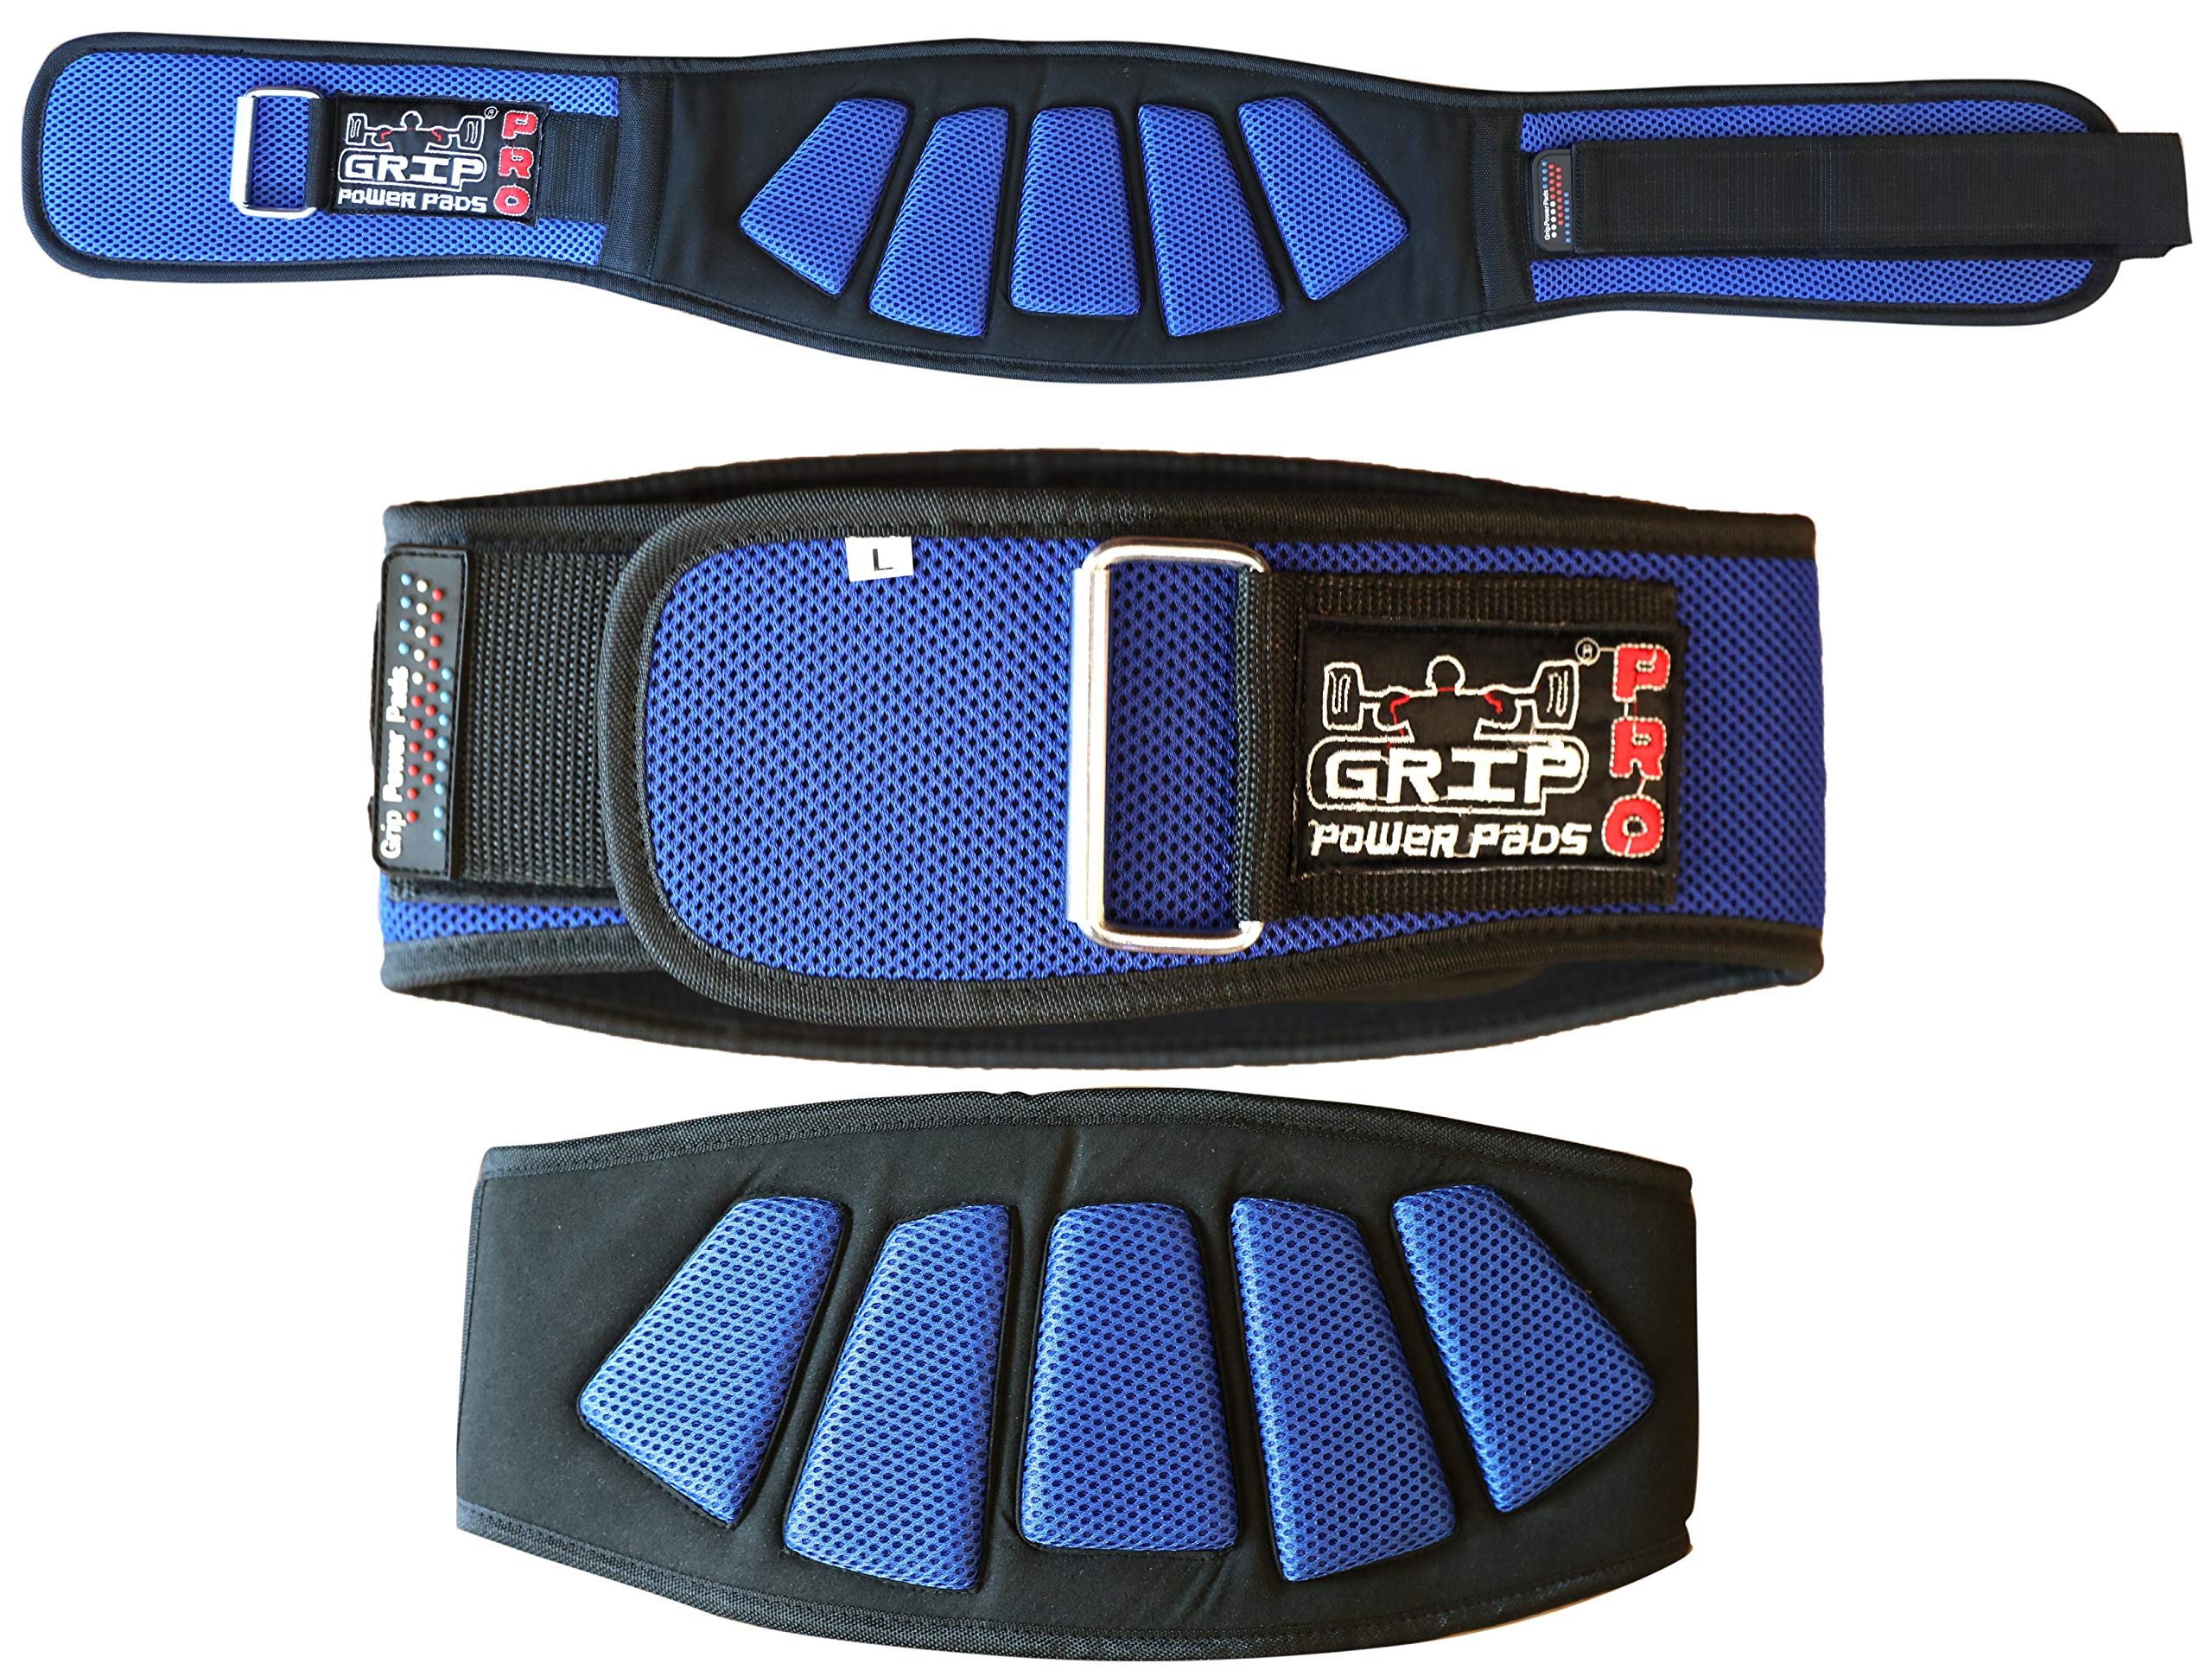 Grip Power Pads Weightlifting Gym Belt Powerlifting for Men & Women 6 Inch Back Support Best for Olympic Gym Lifting (Blue, 27''- 32'' Around Navel Small)